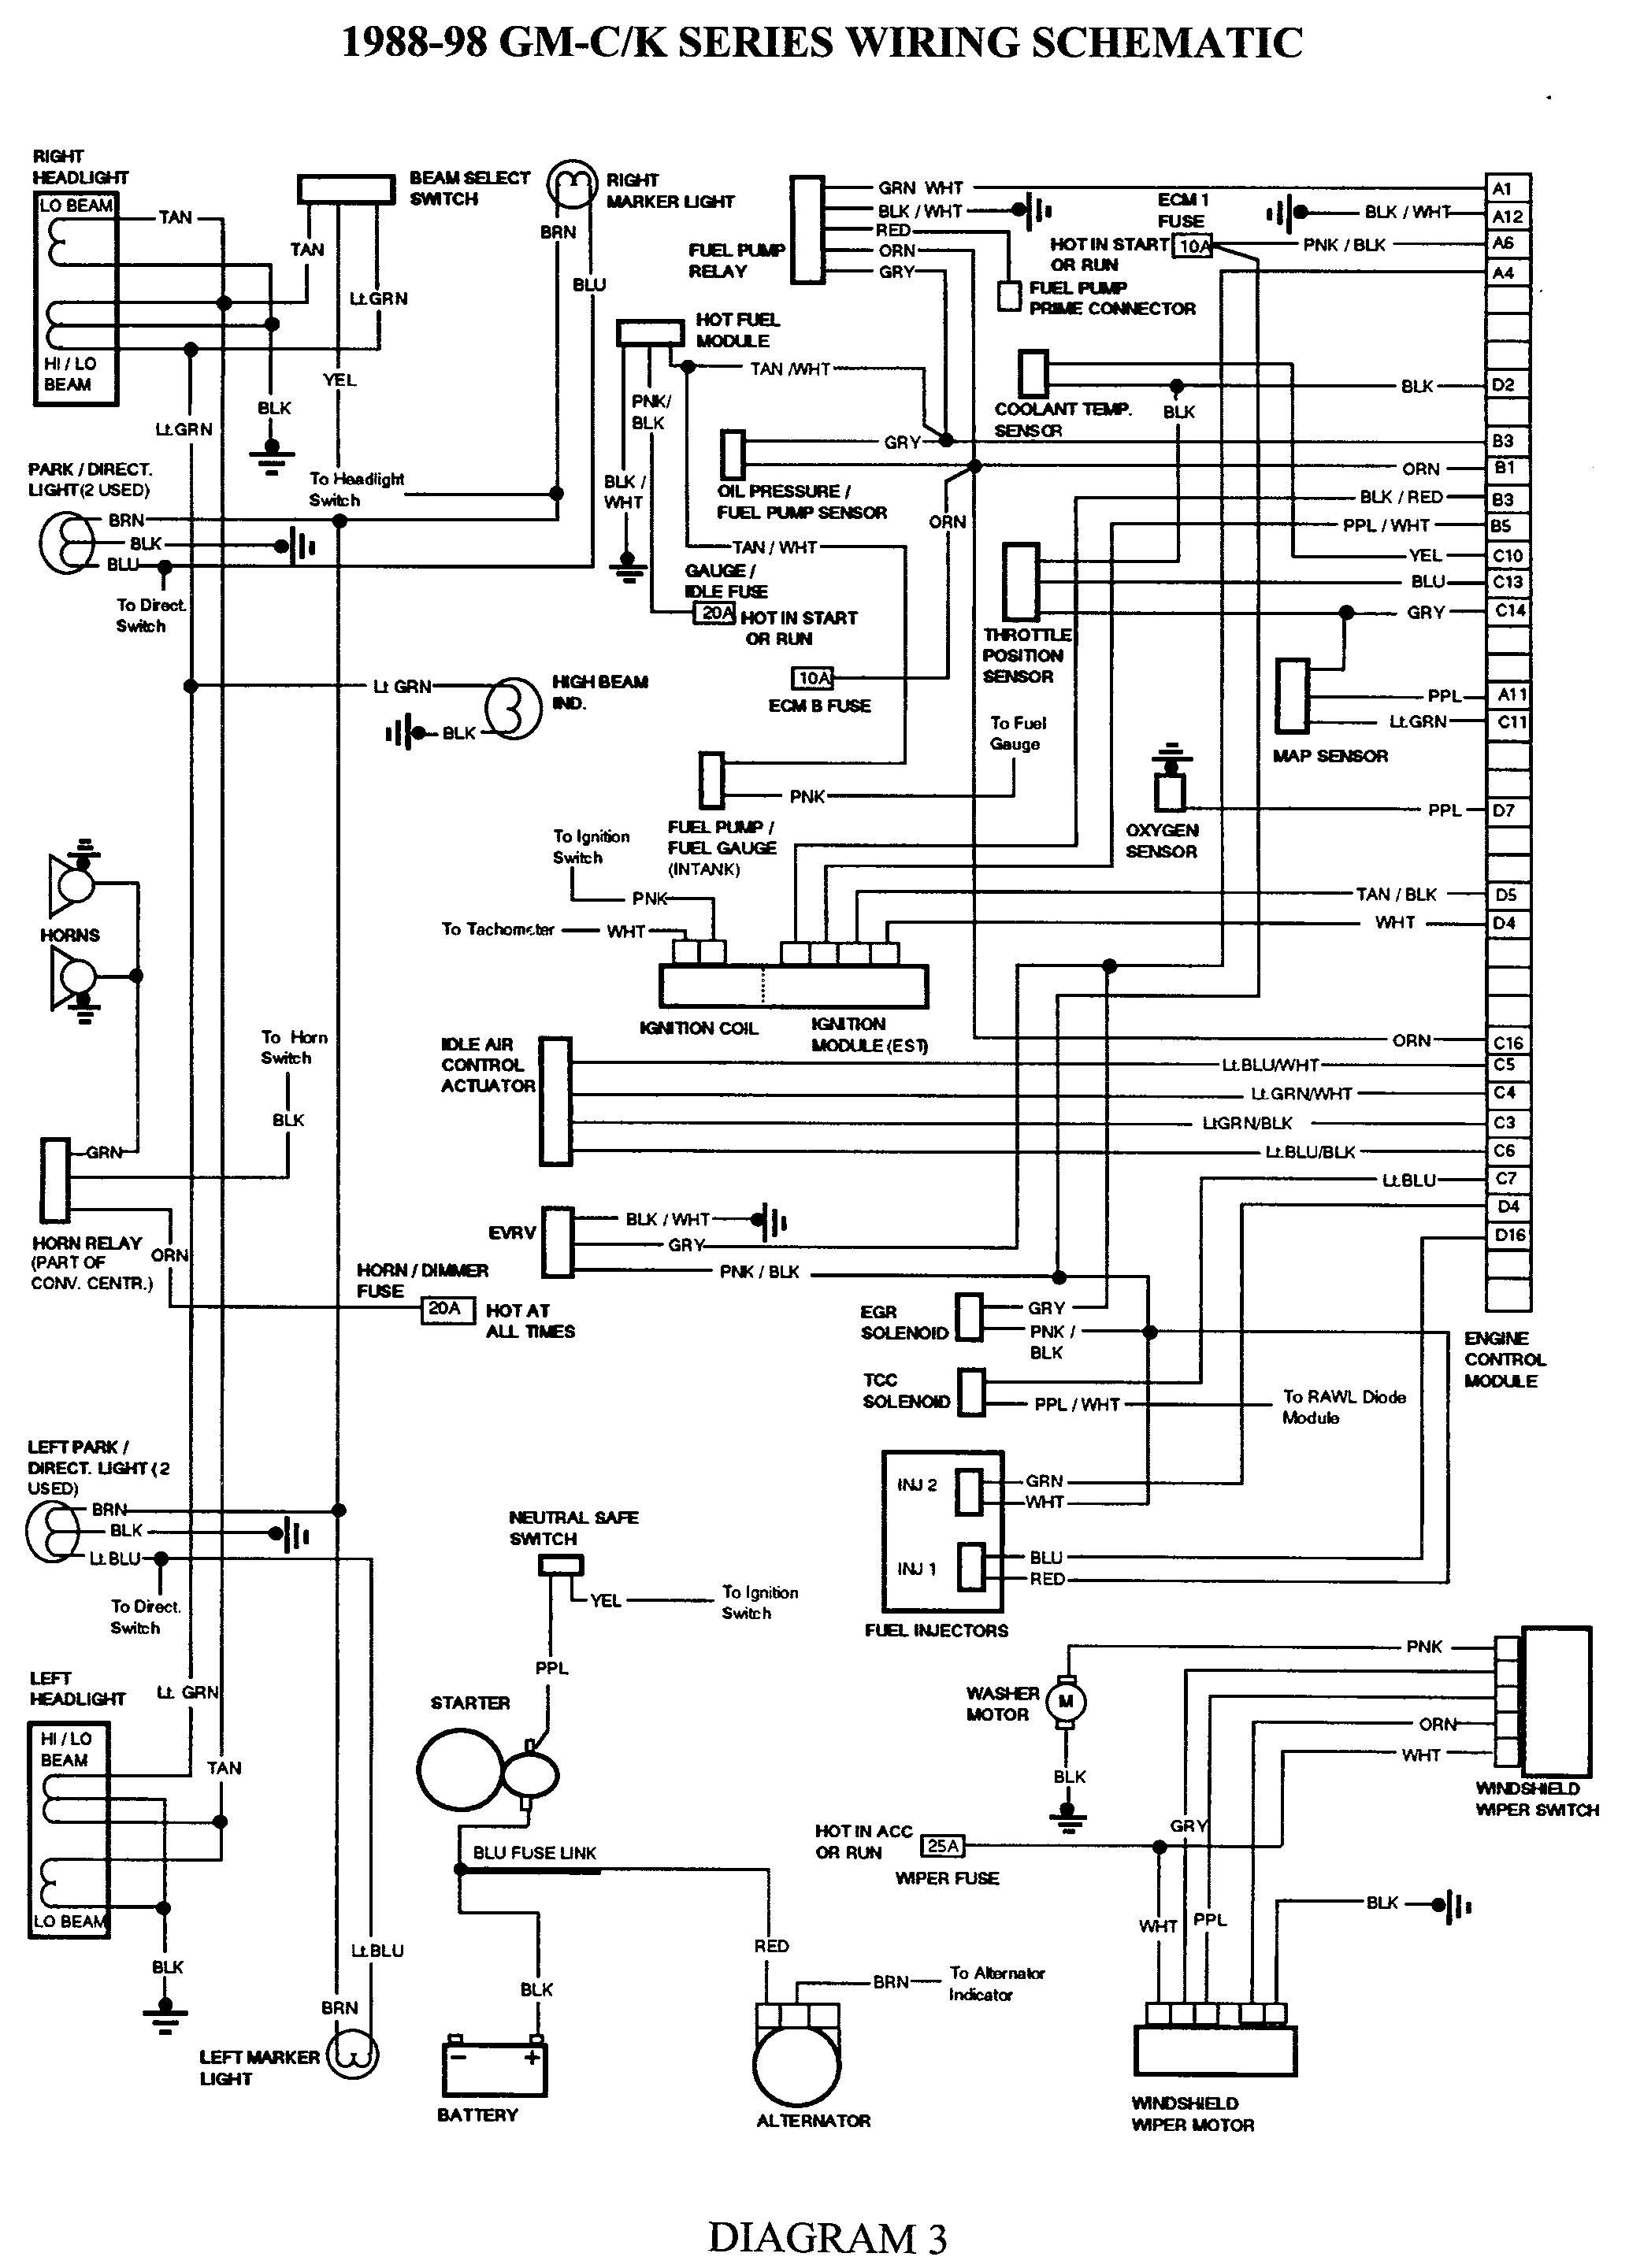 1996 Lincoln town Car Wiring Diagram 98 Gmc Sierra Headlight Wiring Diagram  Circuit Diagrams Image Of